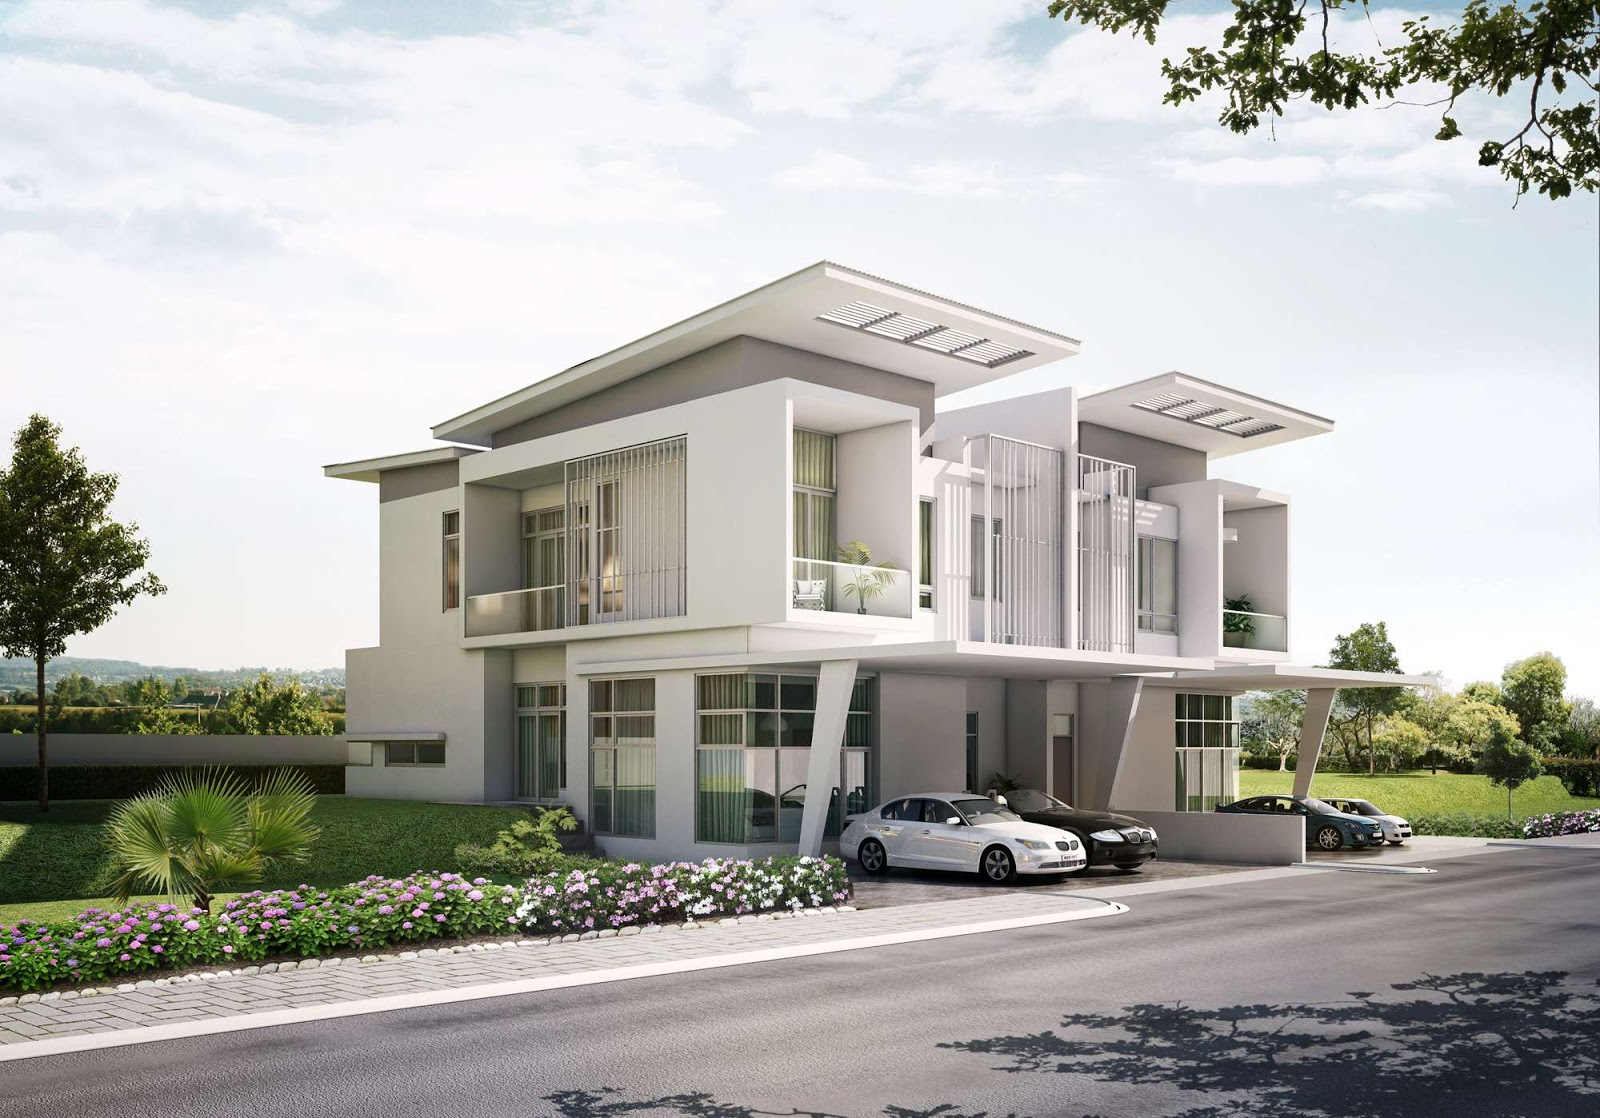 New home designs latest singapore modern homes exterior for Best house exterior designs